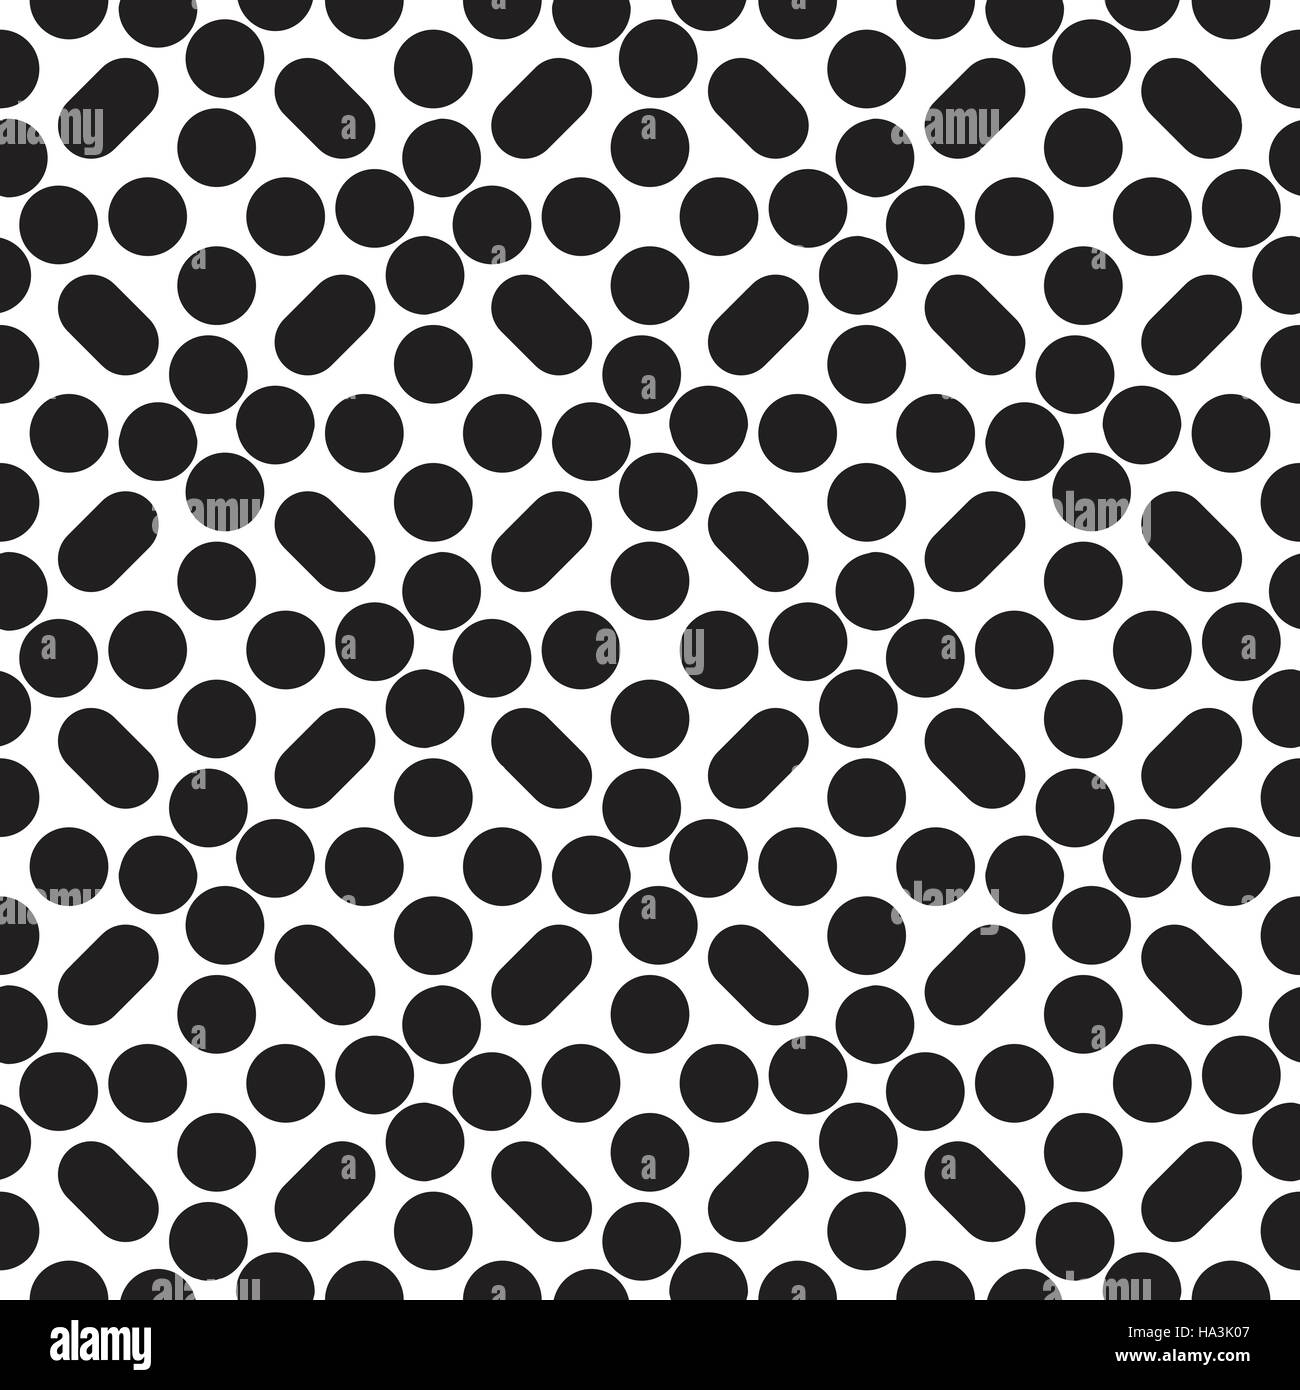 Seamless vector pattern - Stock Image